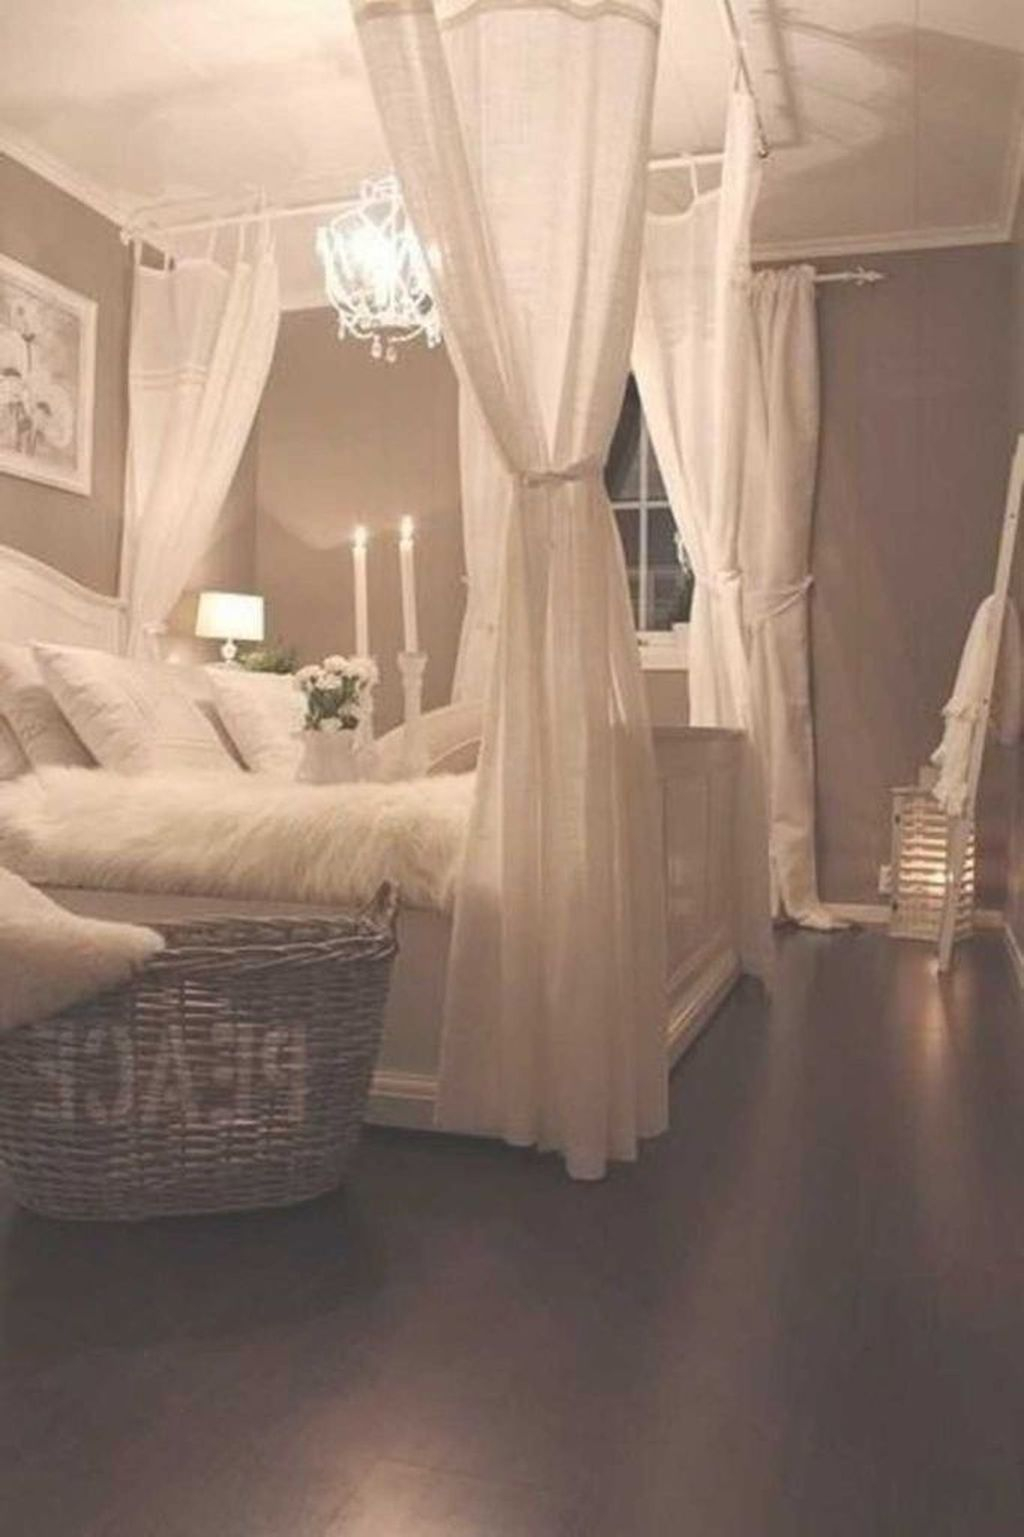 Admiring Bedroom Decor Ideas To Have Right Now 30